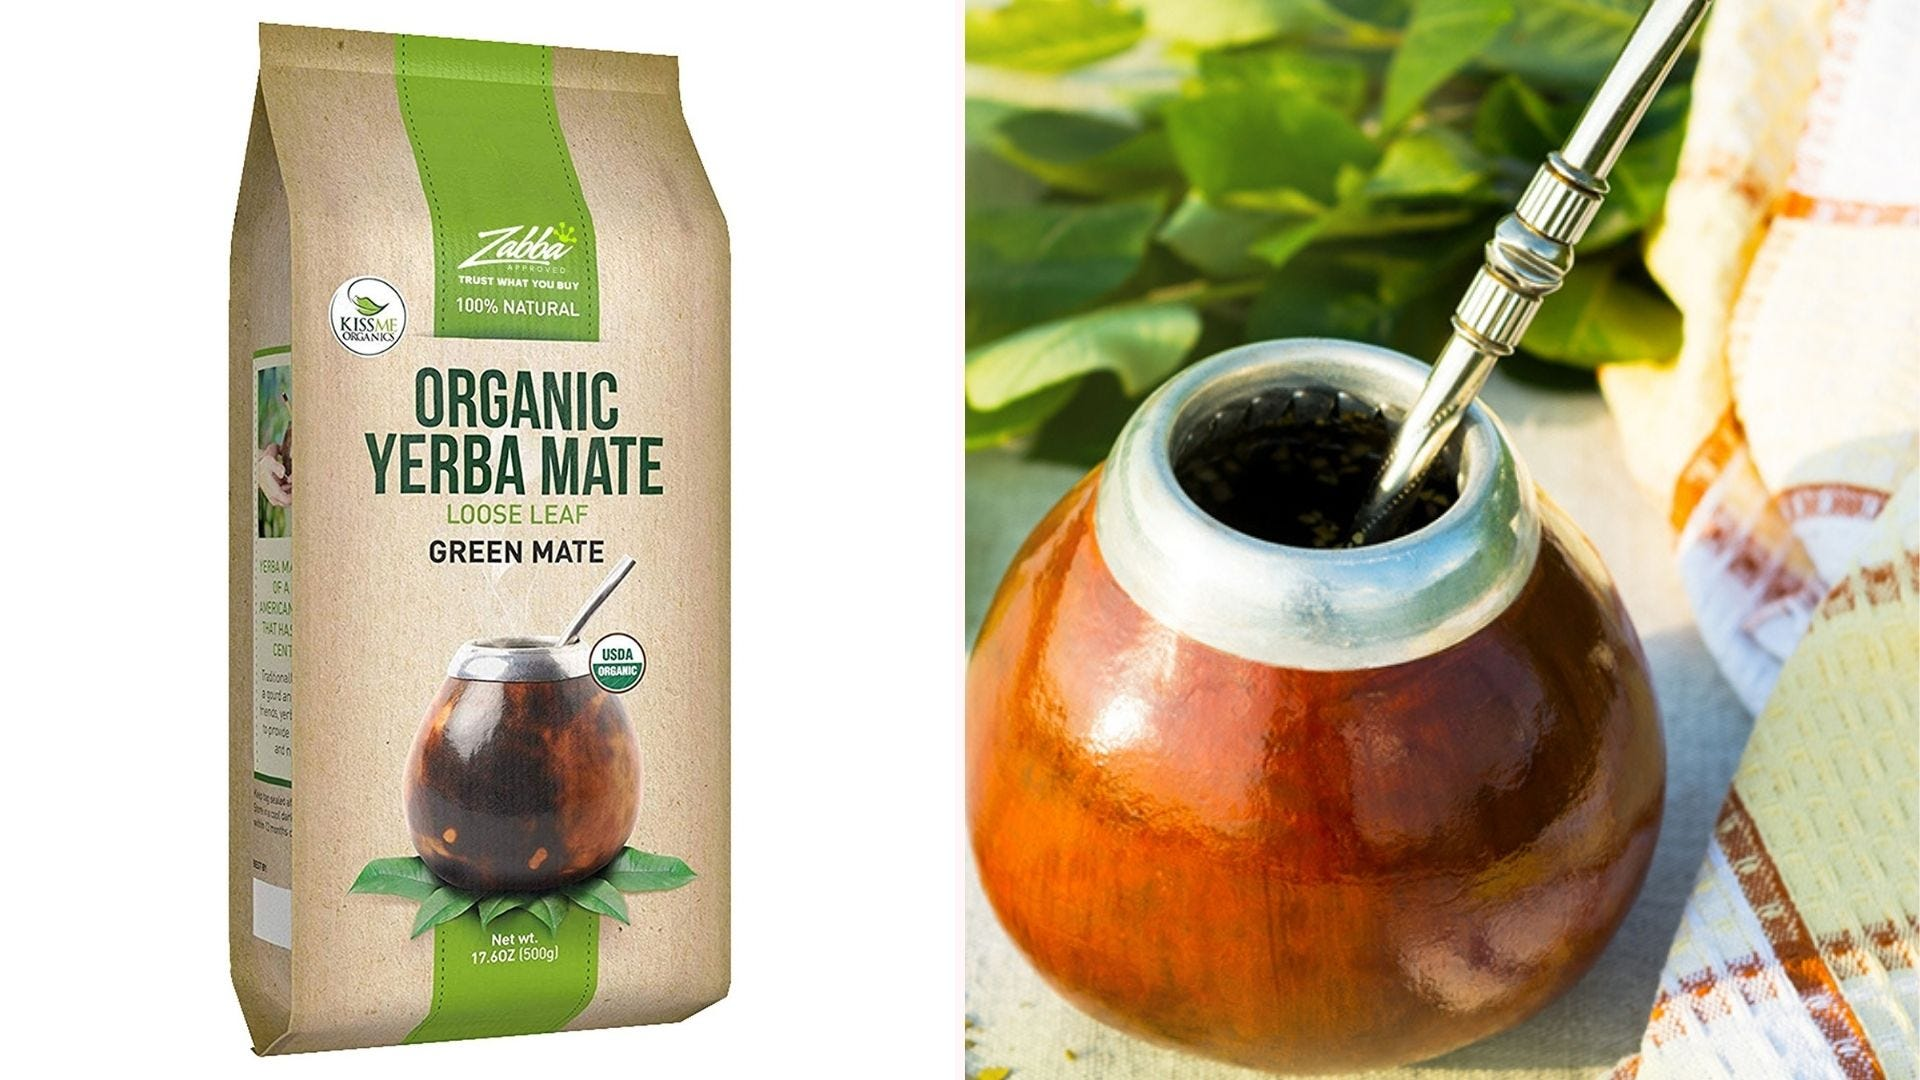 A package of organic yerba mate with a traditional drinking vessel.